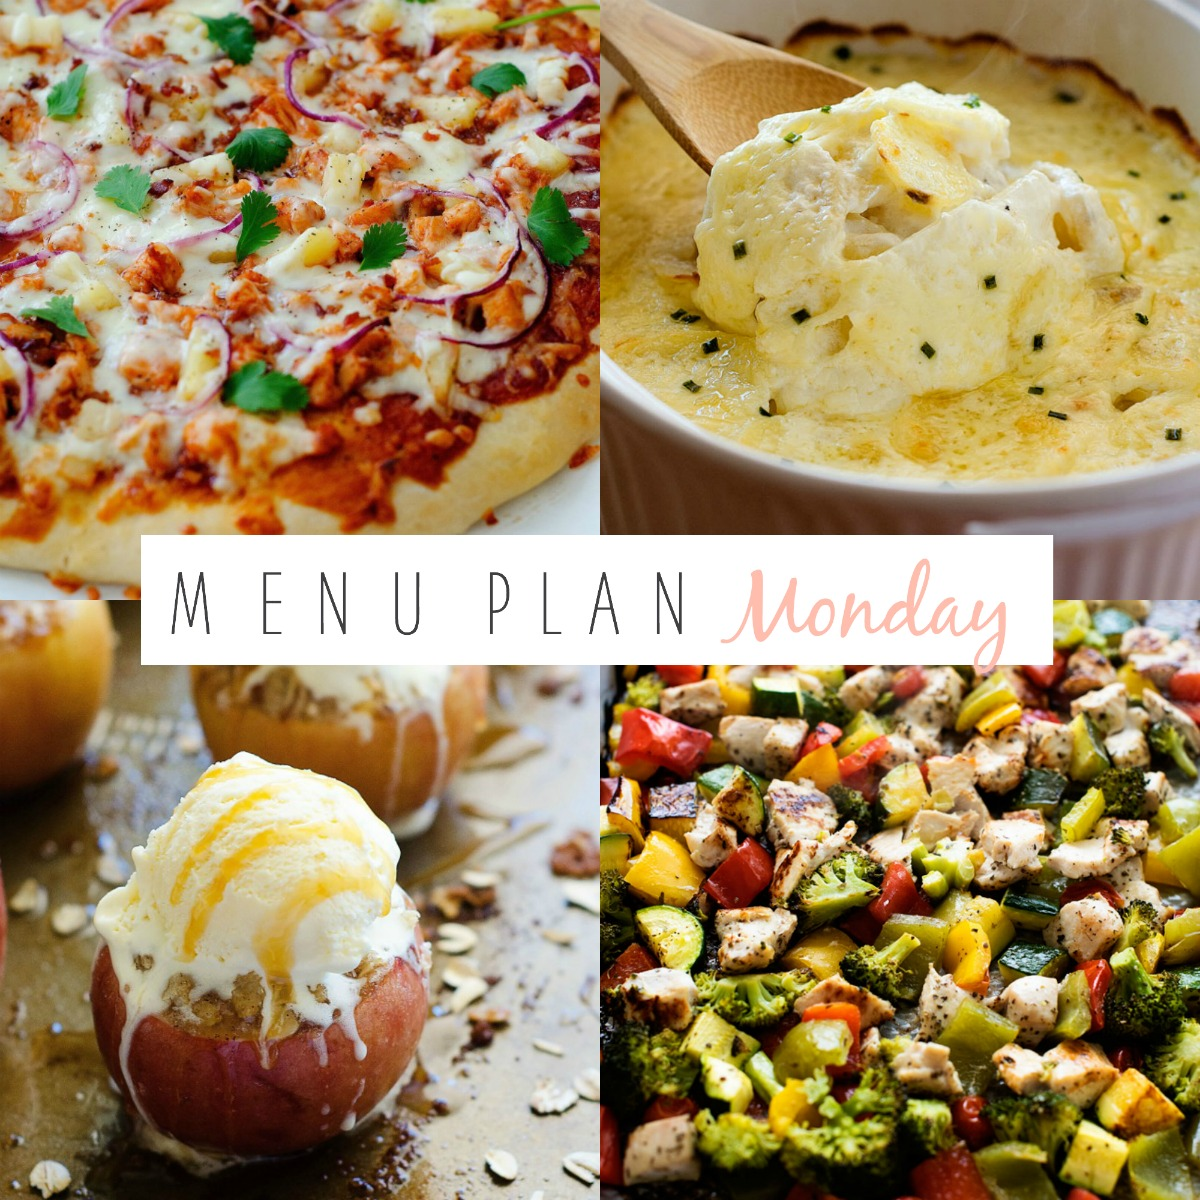 Menu Plan Monday #160 on Life in the Lofthouse.com Always tons of easy dinner ideas on her menus!